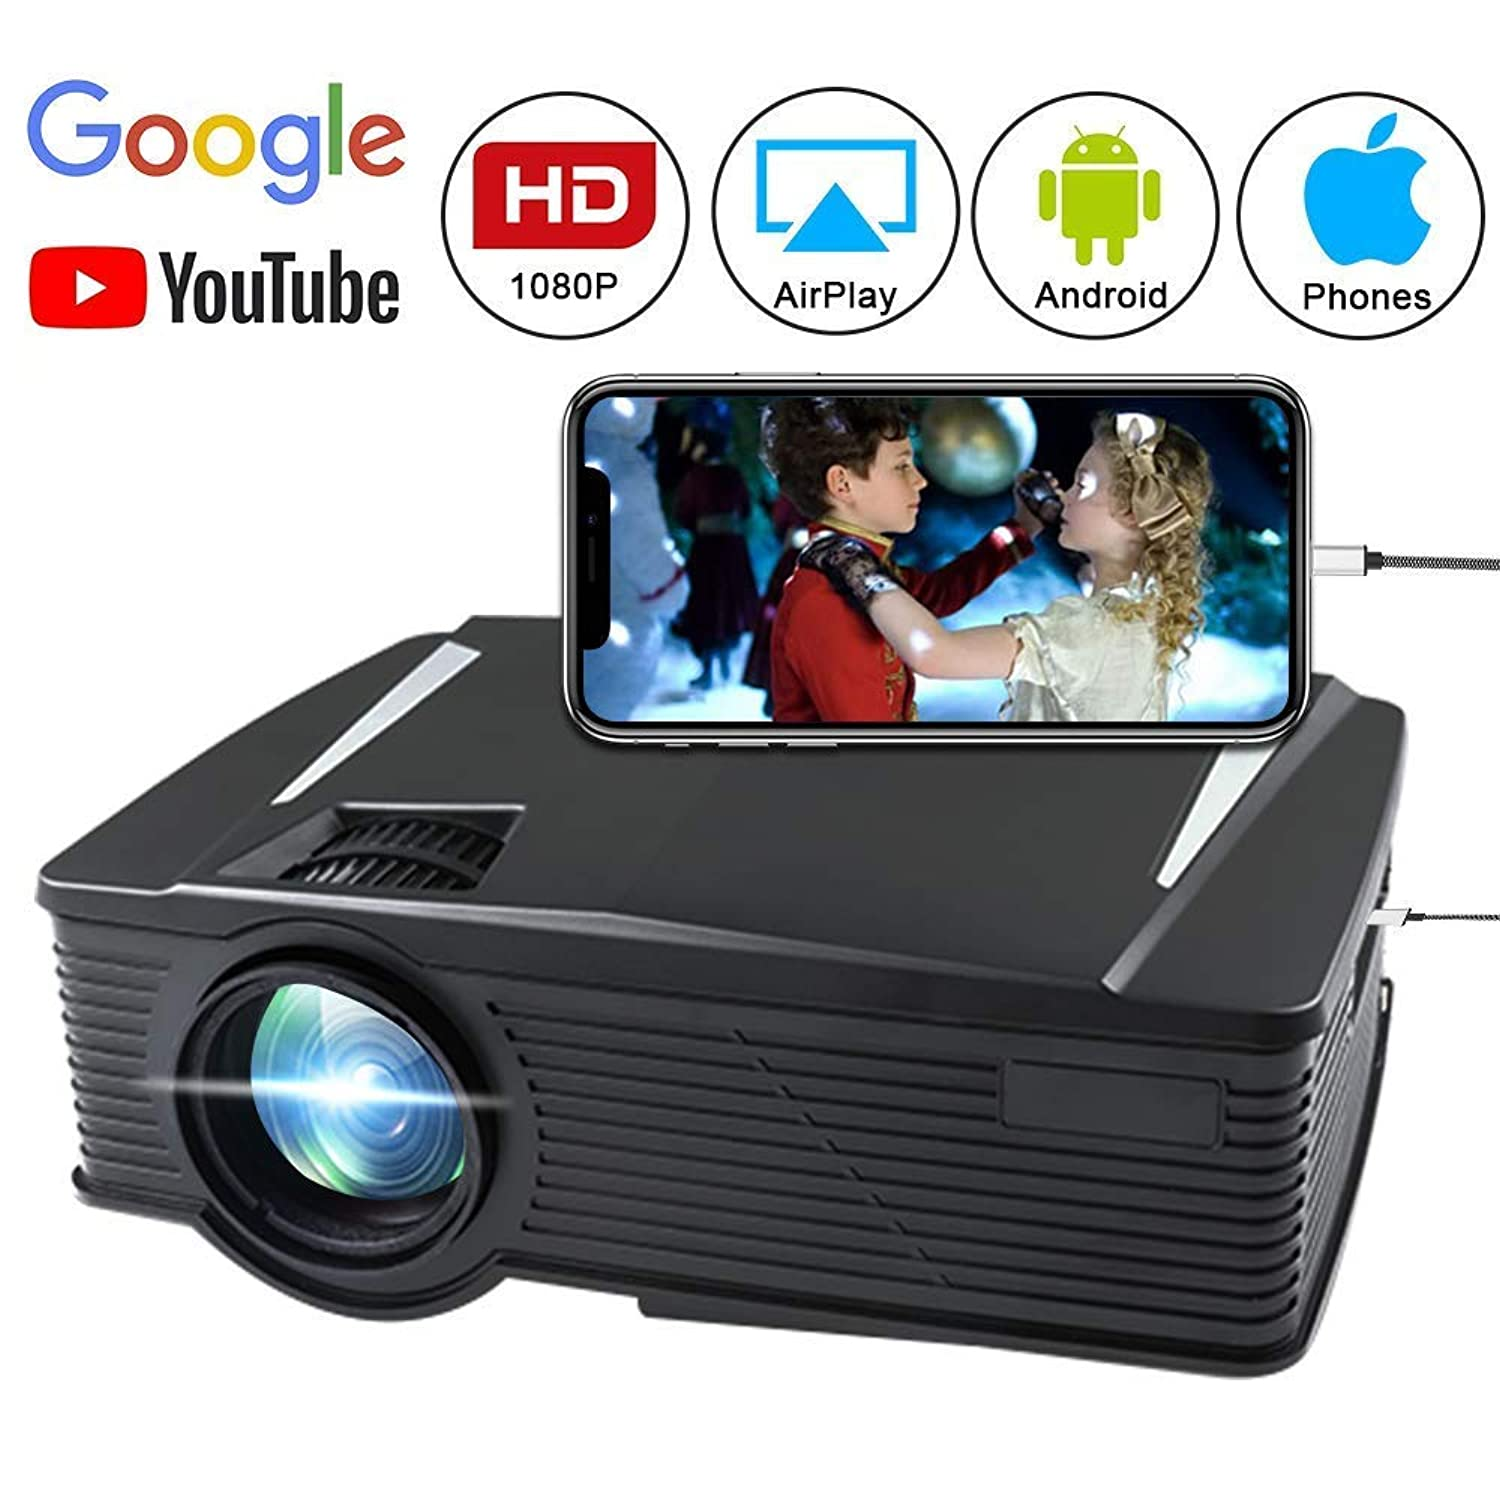 Porjector,Home Theater Video Projector 1080P, LED LCD Mini Projector Portable Movie Projector Support HDMI, USB, SD Card, VGA, AV for Home Cinema, TV, Laptops, Game, Smartphone & iPad (White)